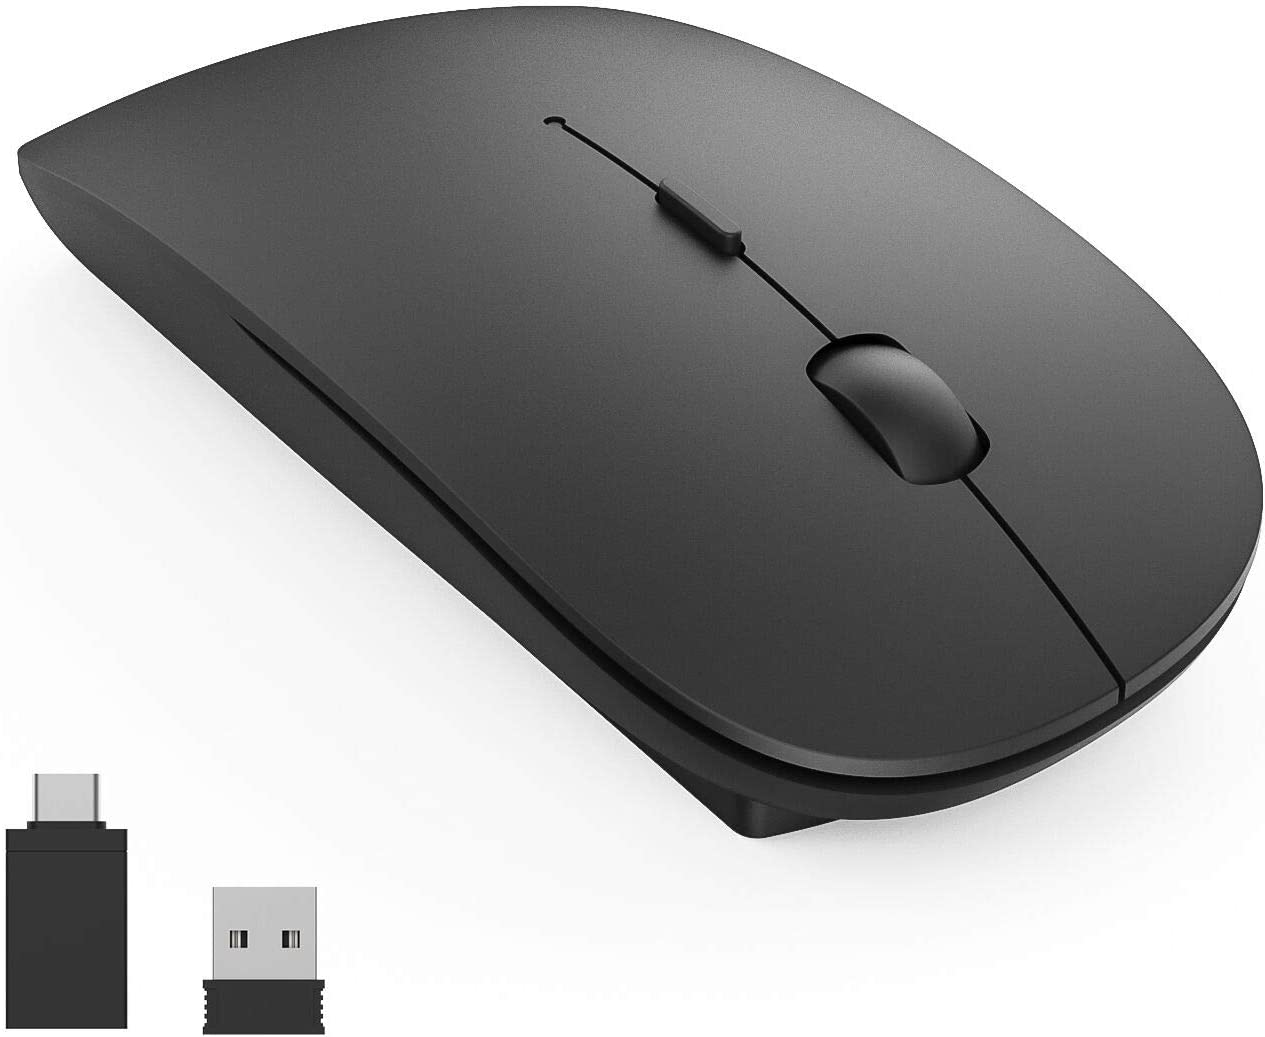 Wireless Mouse, 2.4G Slim Window Laptop Wireless Mice, with USB Receiver and Type-C Adapter, 1600DPI Silent Click Cordless Computer Mouse for PC/Laptop/Mac/Desktop(Matte Black)